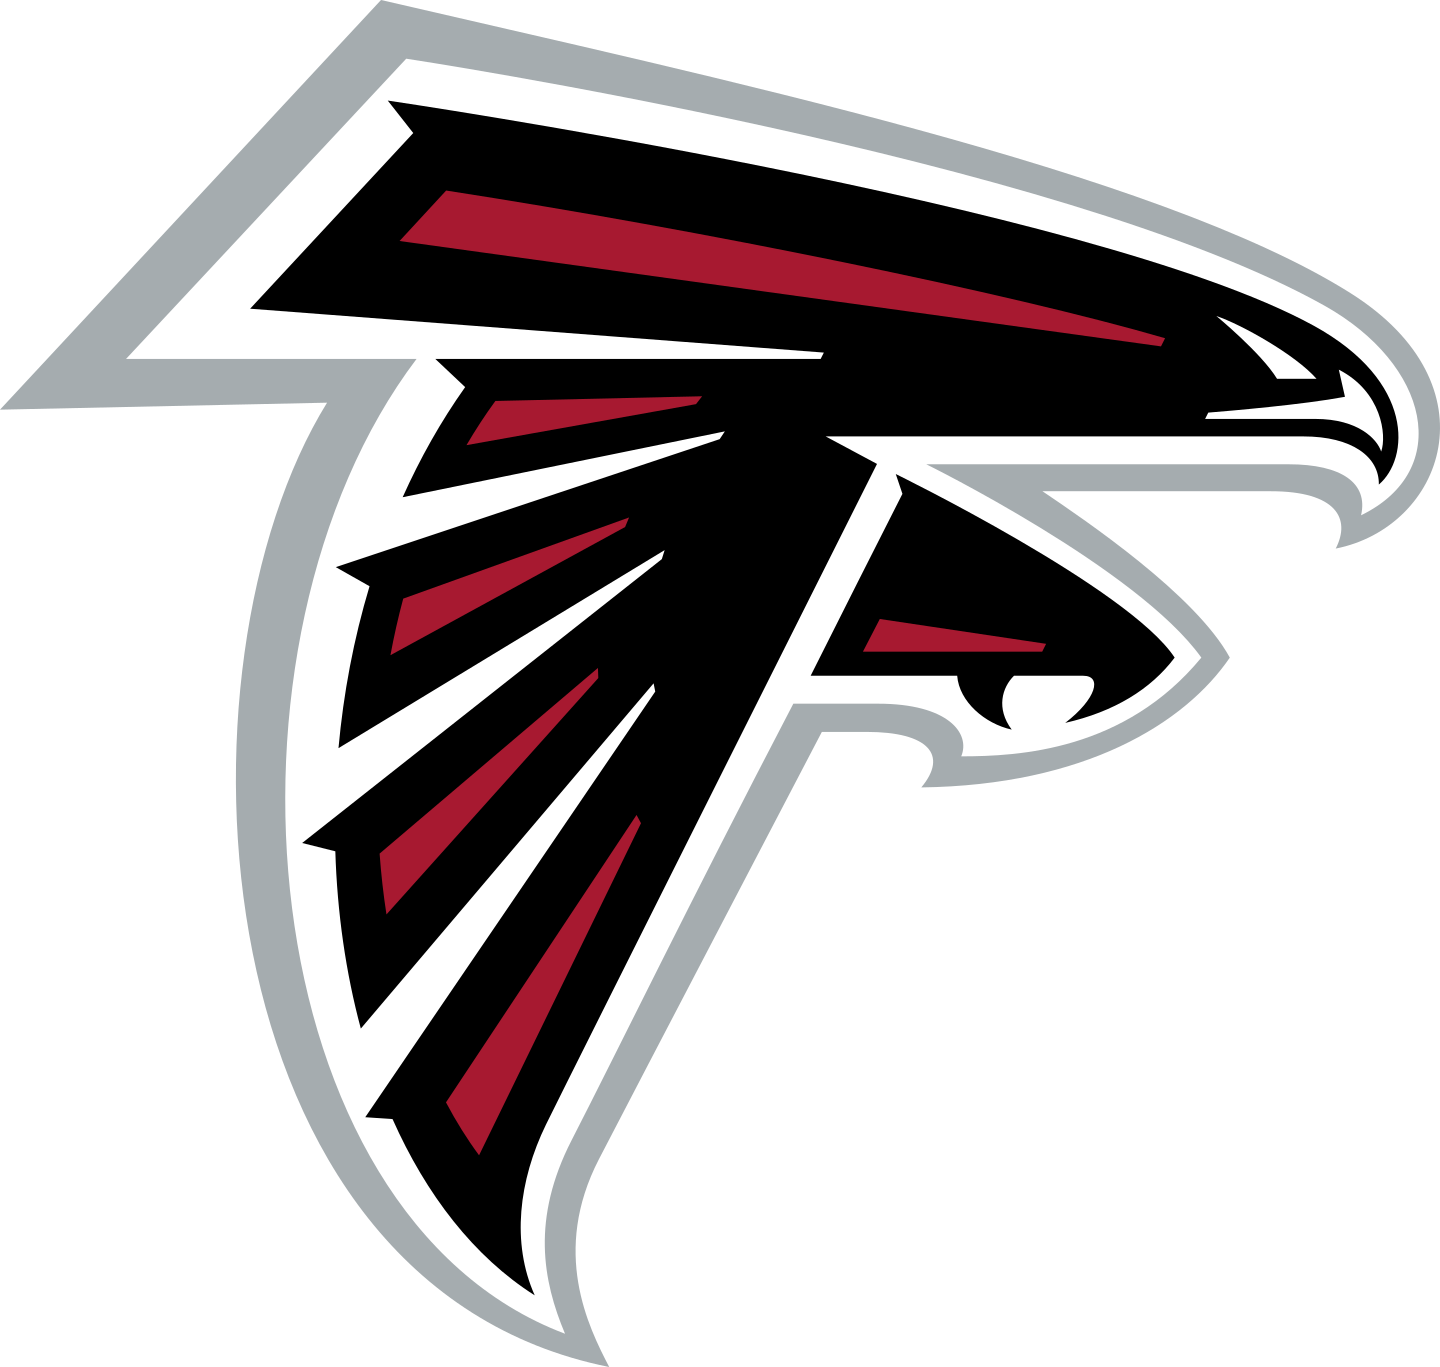 atlanta falcons logo 2 - Atlanta Falcons Logo